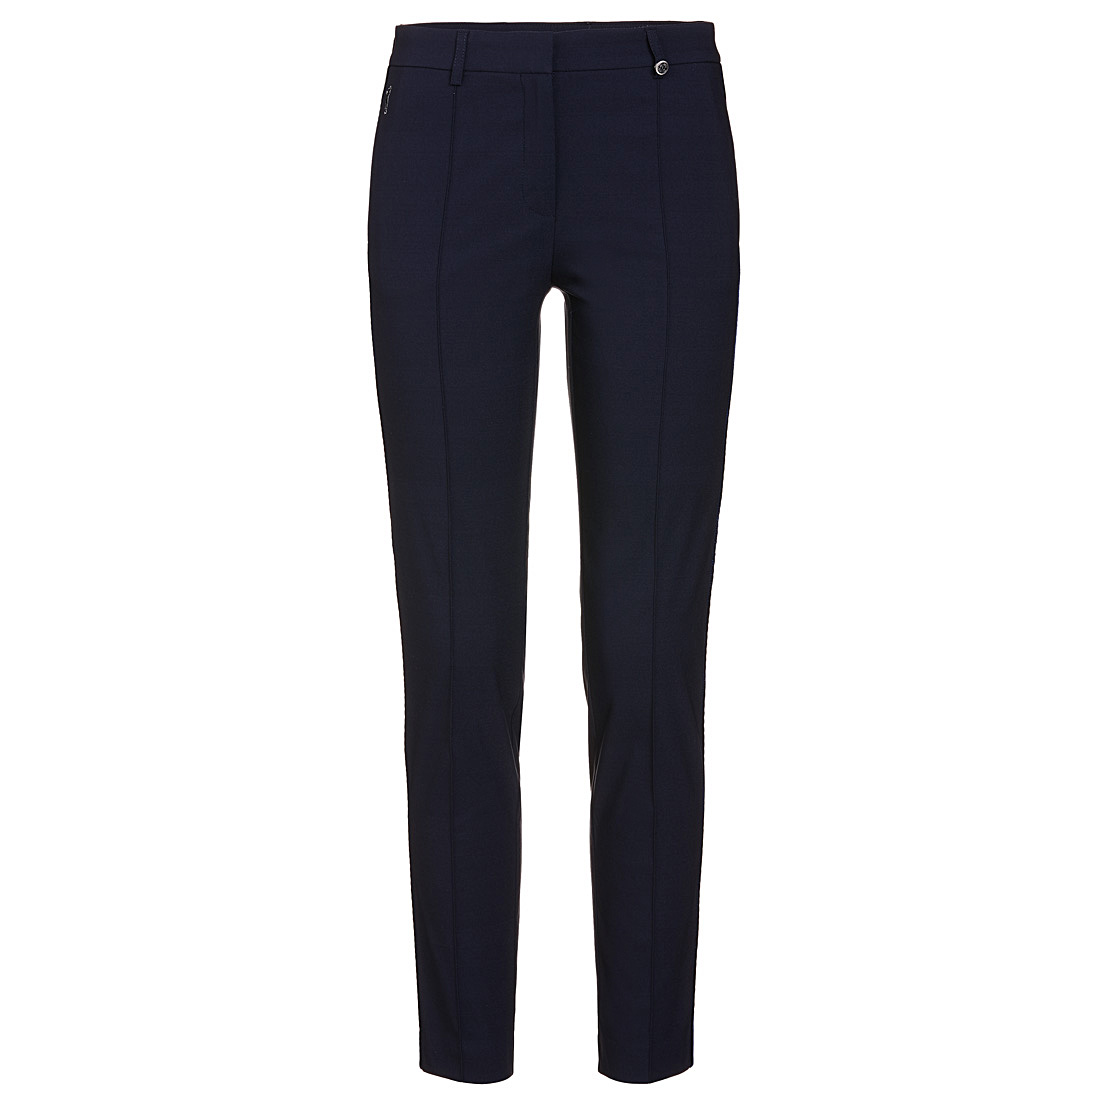 Brushed techno stretch 7/8 trousers